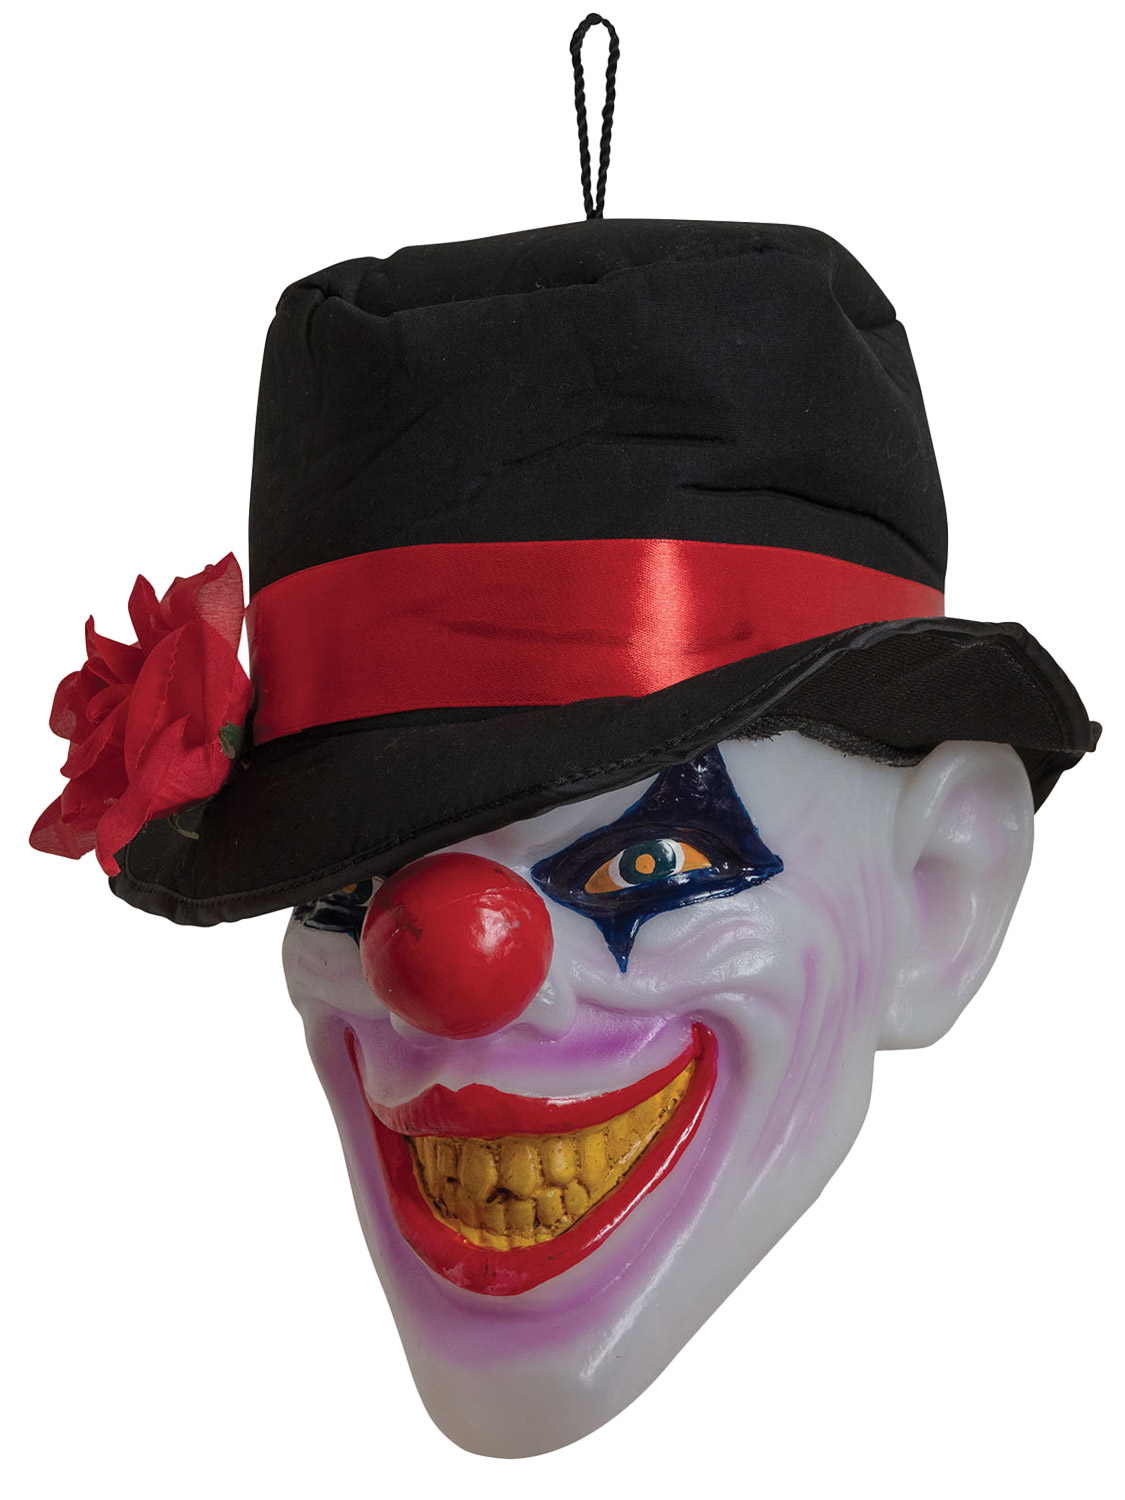 Details about Light Up Scary Clown Head Prop Sound Halloween House Party Decoration Horror